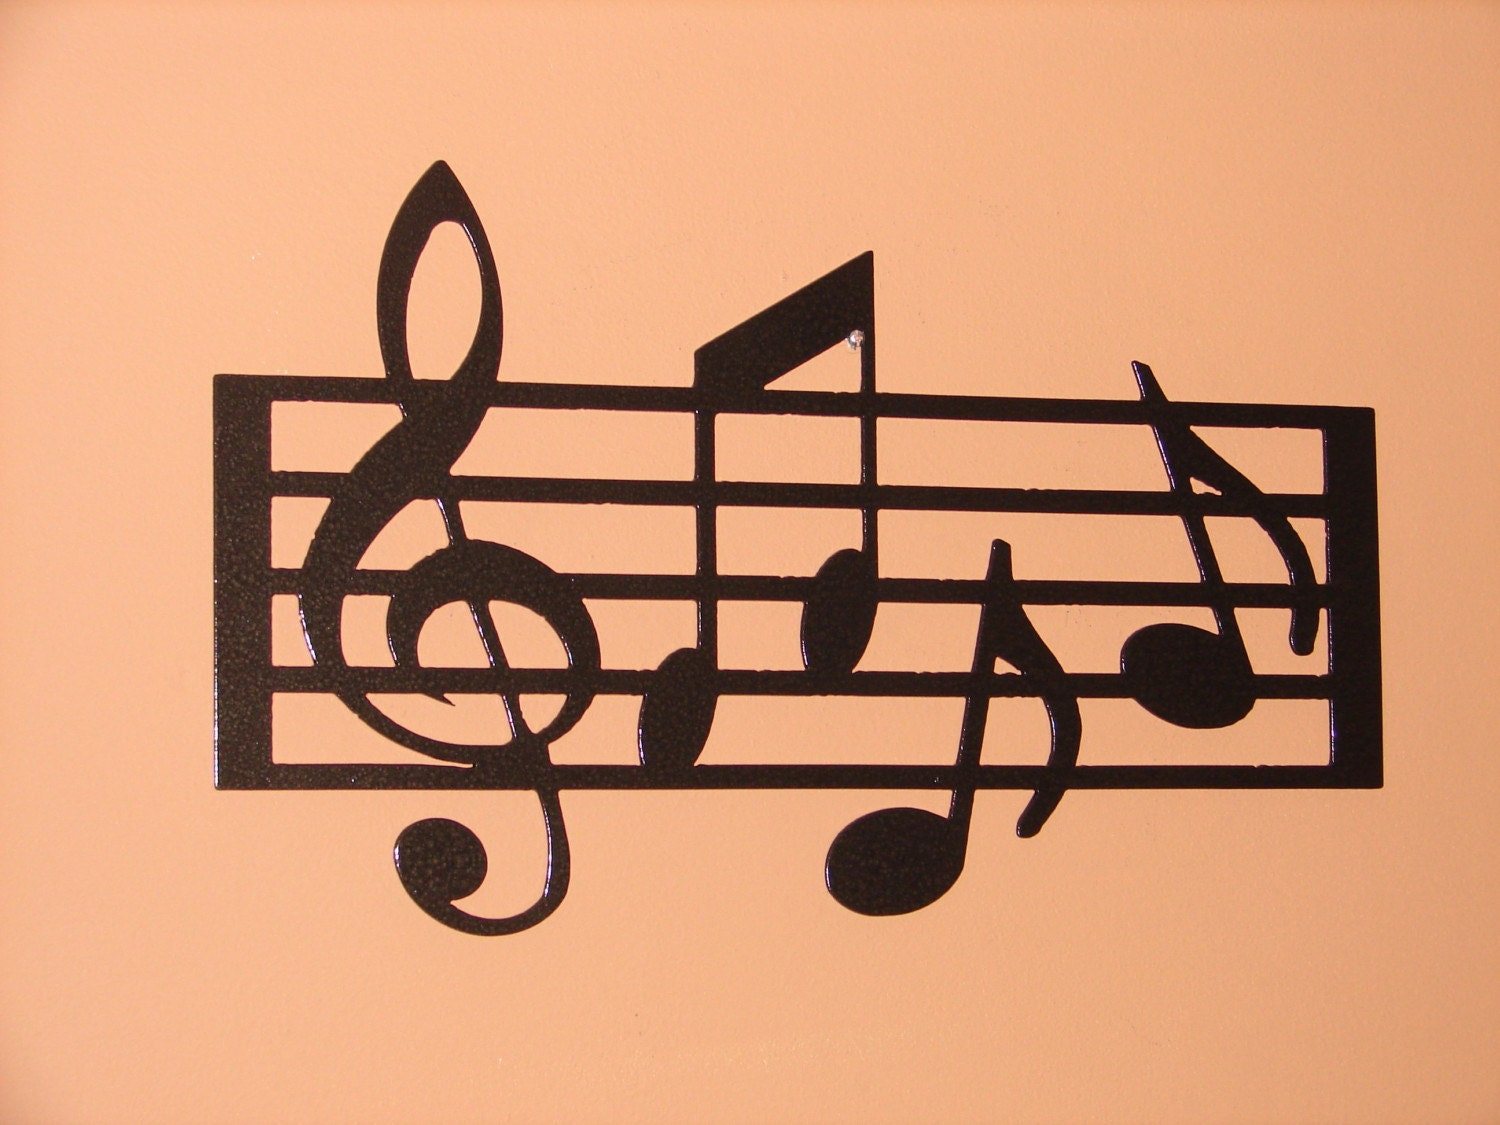 Musical Notes Wall Decor Pictures To Pin On Pinterest